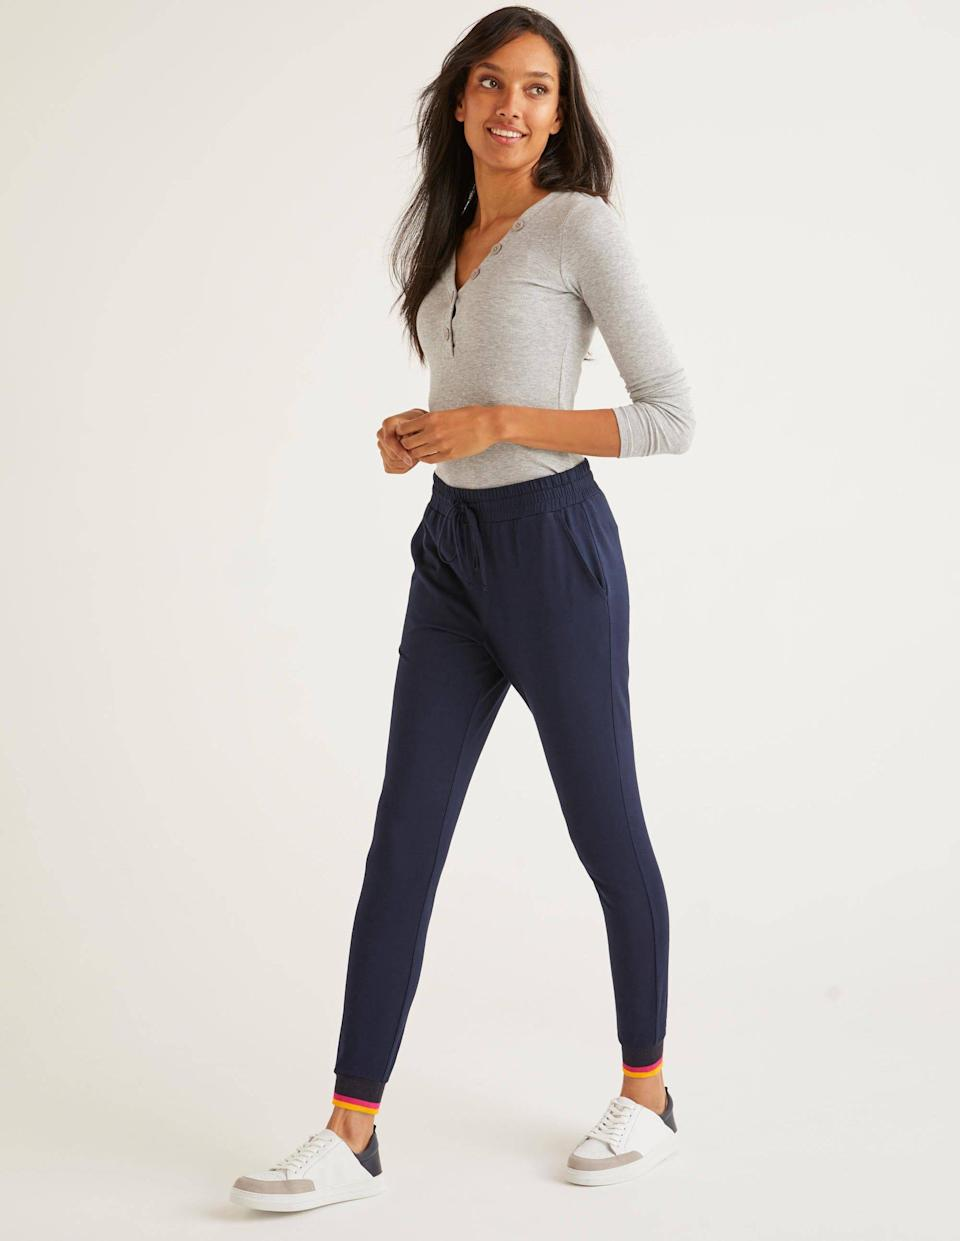 """<p>The fit of these Boden Cuffed Jersey Joggers is a hybrid between a sweatpant and a legging, with a drawstring waist that will come in handy right after that snack break. The orange and yellow stripes at the ankles are a nice touch of color against the classic navy. This style comes in six colors, which makes it even more perfect for stockpiling as your new go-to bottom. </p> <p><strong>Sizes available:</strong> XS to XL</p> <p><strong>$44</strong> (<a href=""""https://www.bodenusa.com/en-us/cuffed-jersey-joggers-navy/sty-j0612-nav?cat=C1_S2_G114"""" rel=""""nofollow noopener"""" target=""""_blank"""" data-ylk=""""slk:Shop Now"""" class=""""link rapid-noclick-resp"""">Shop Now</a>) </p>"""